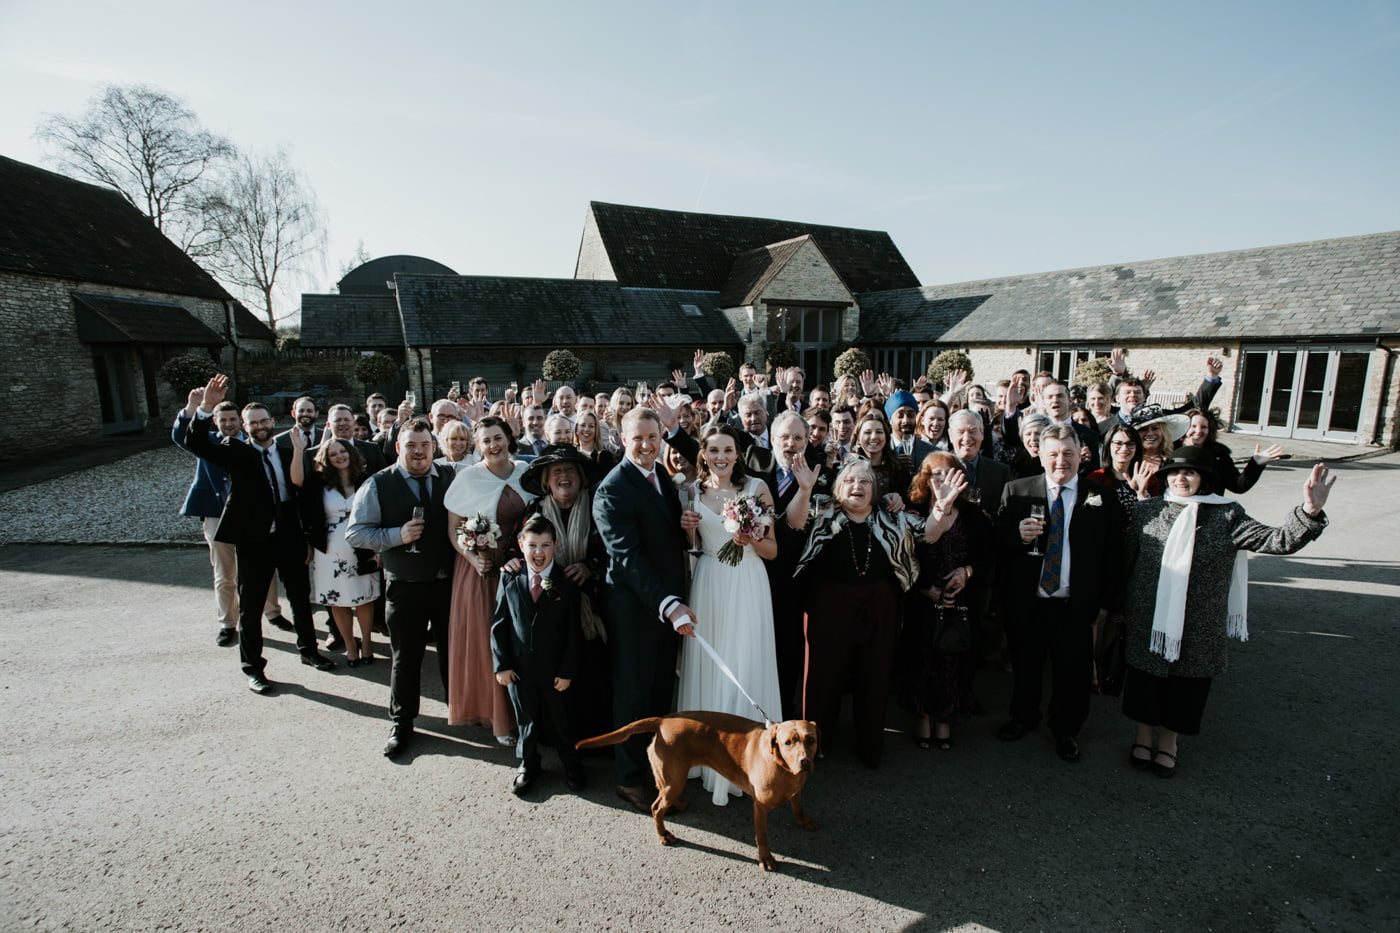 Ruth and Ben, Winkworth Farm, Wiltshire 20